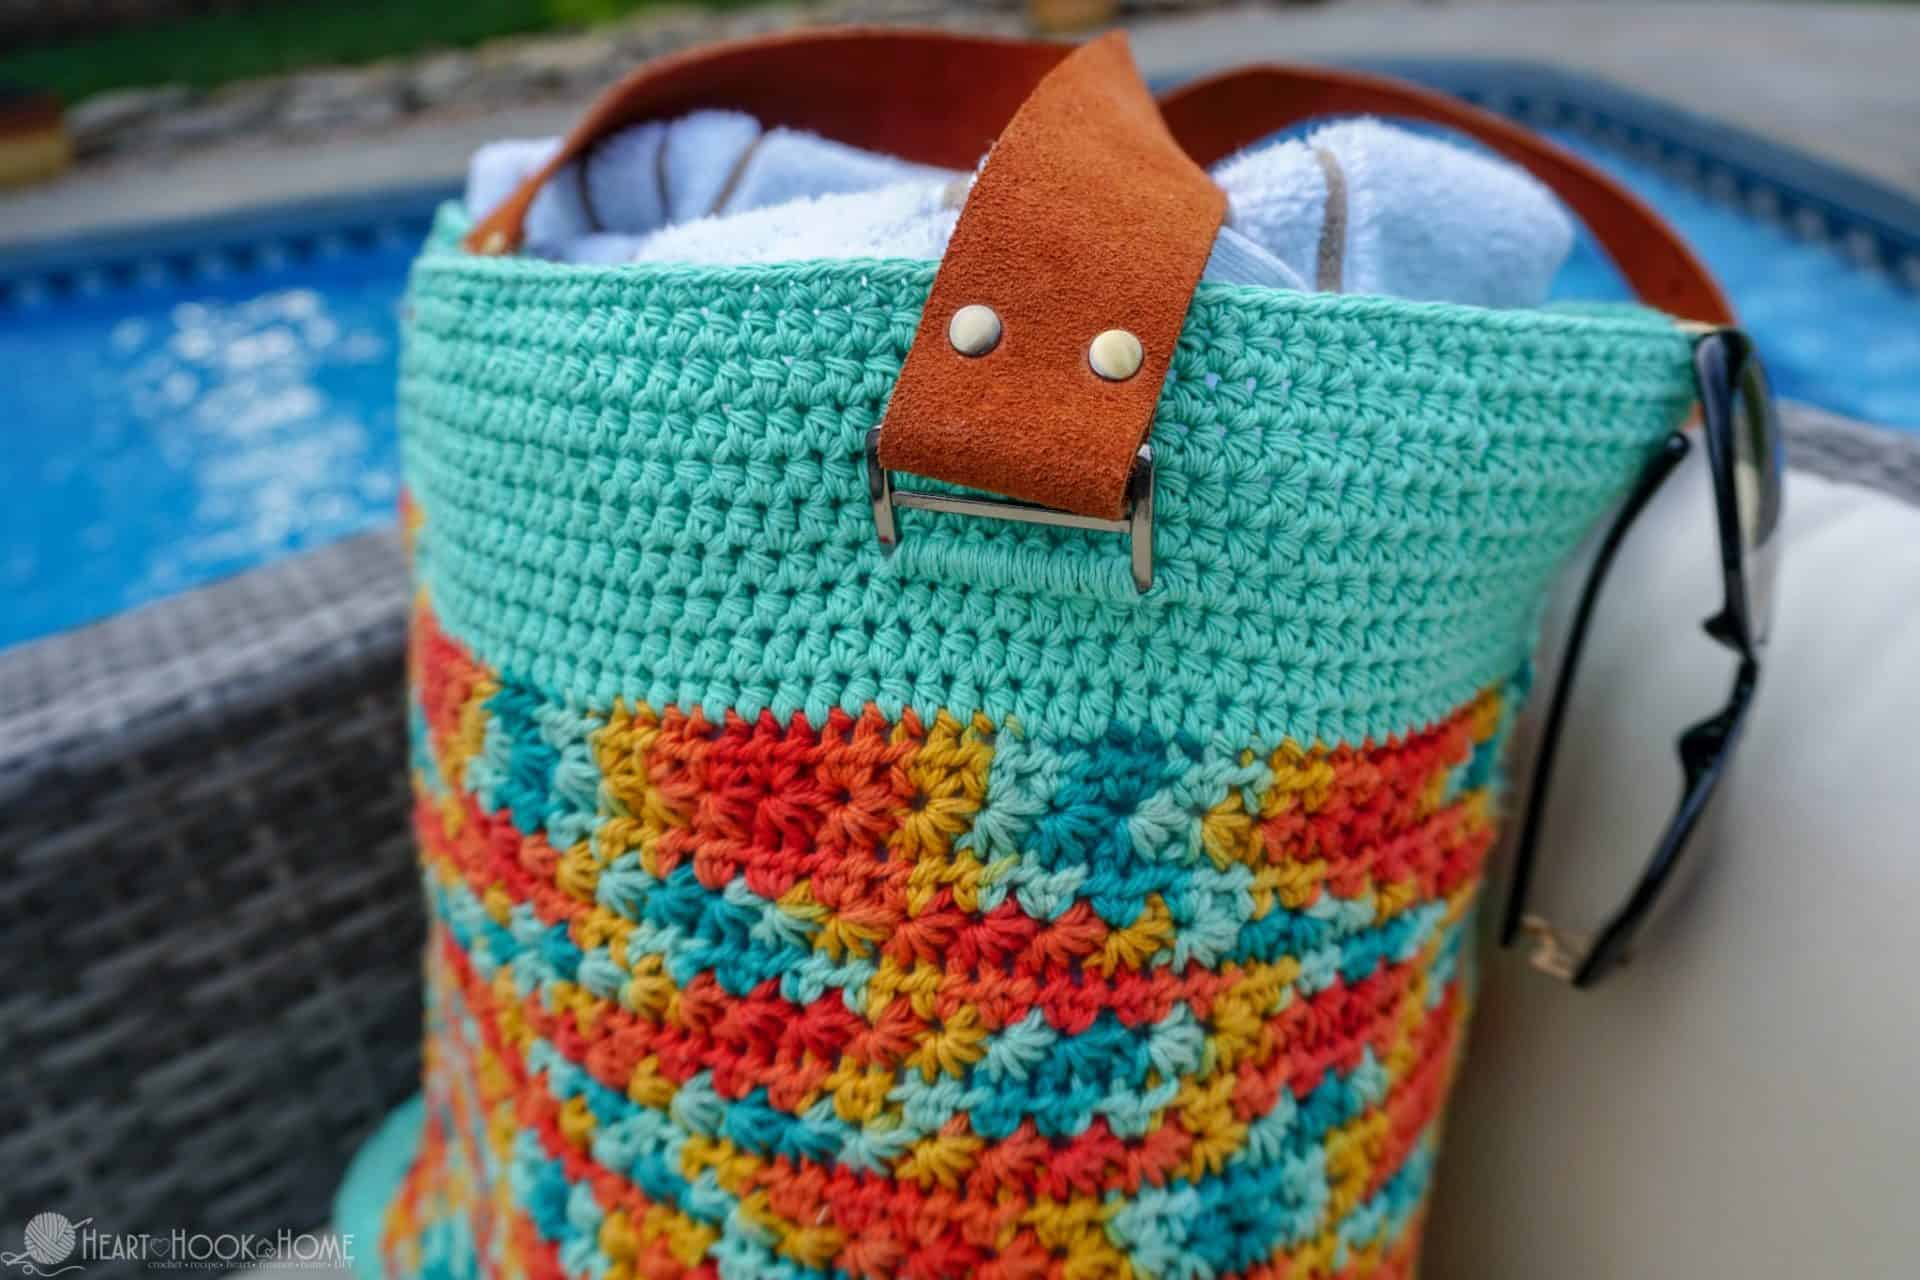 Life's a Beach Bag crochet pattern